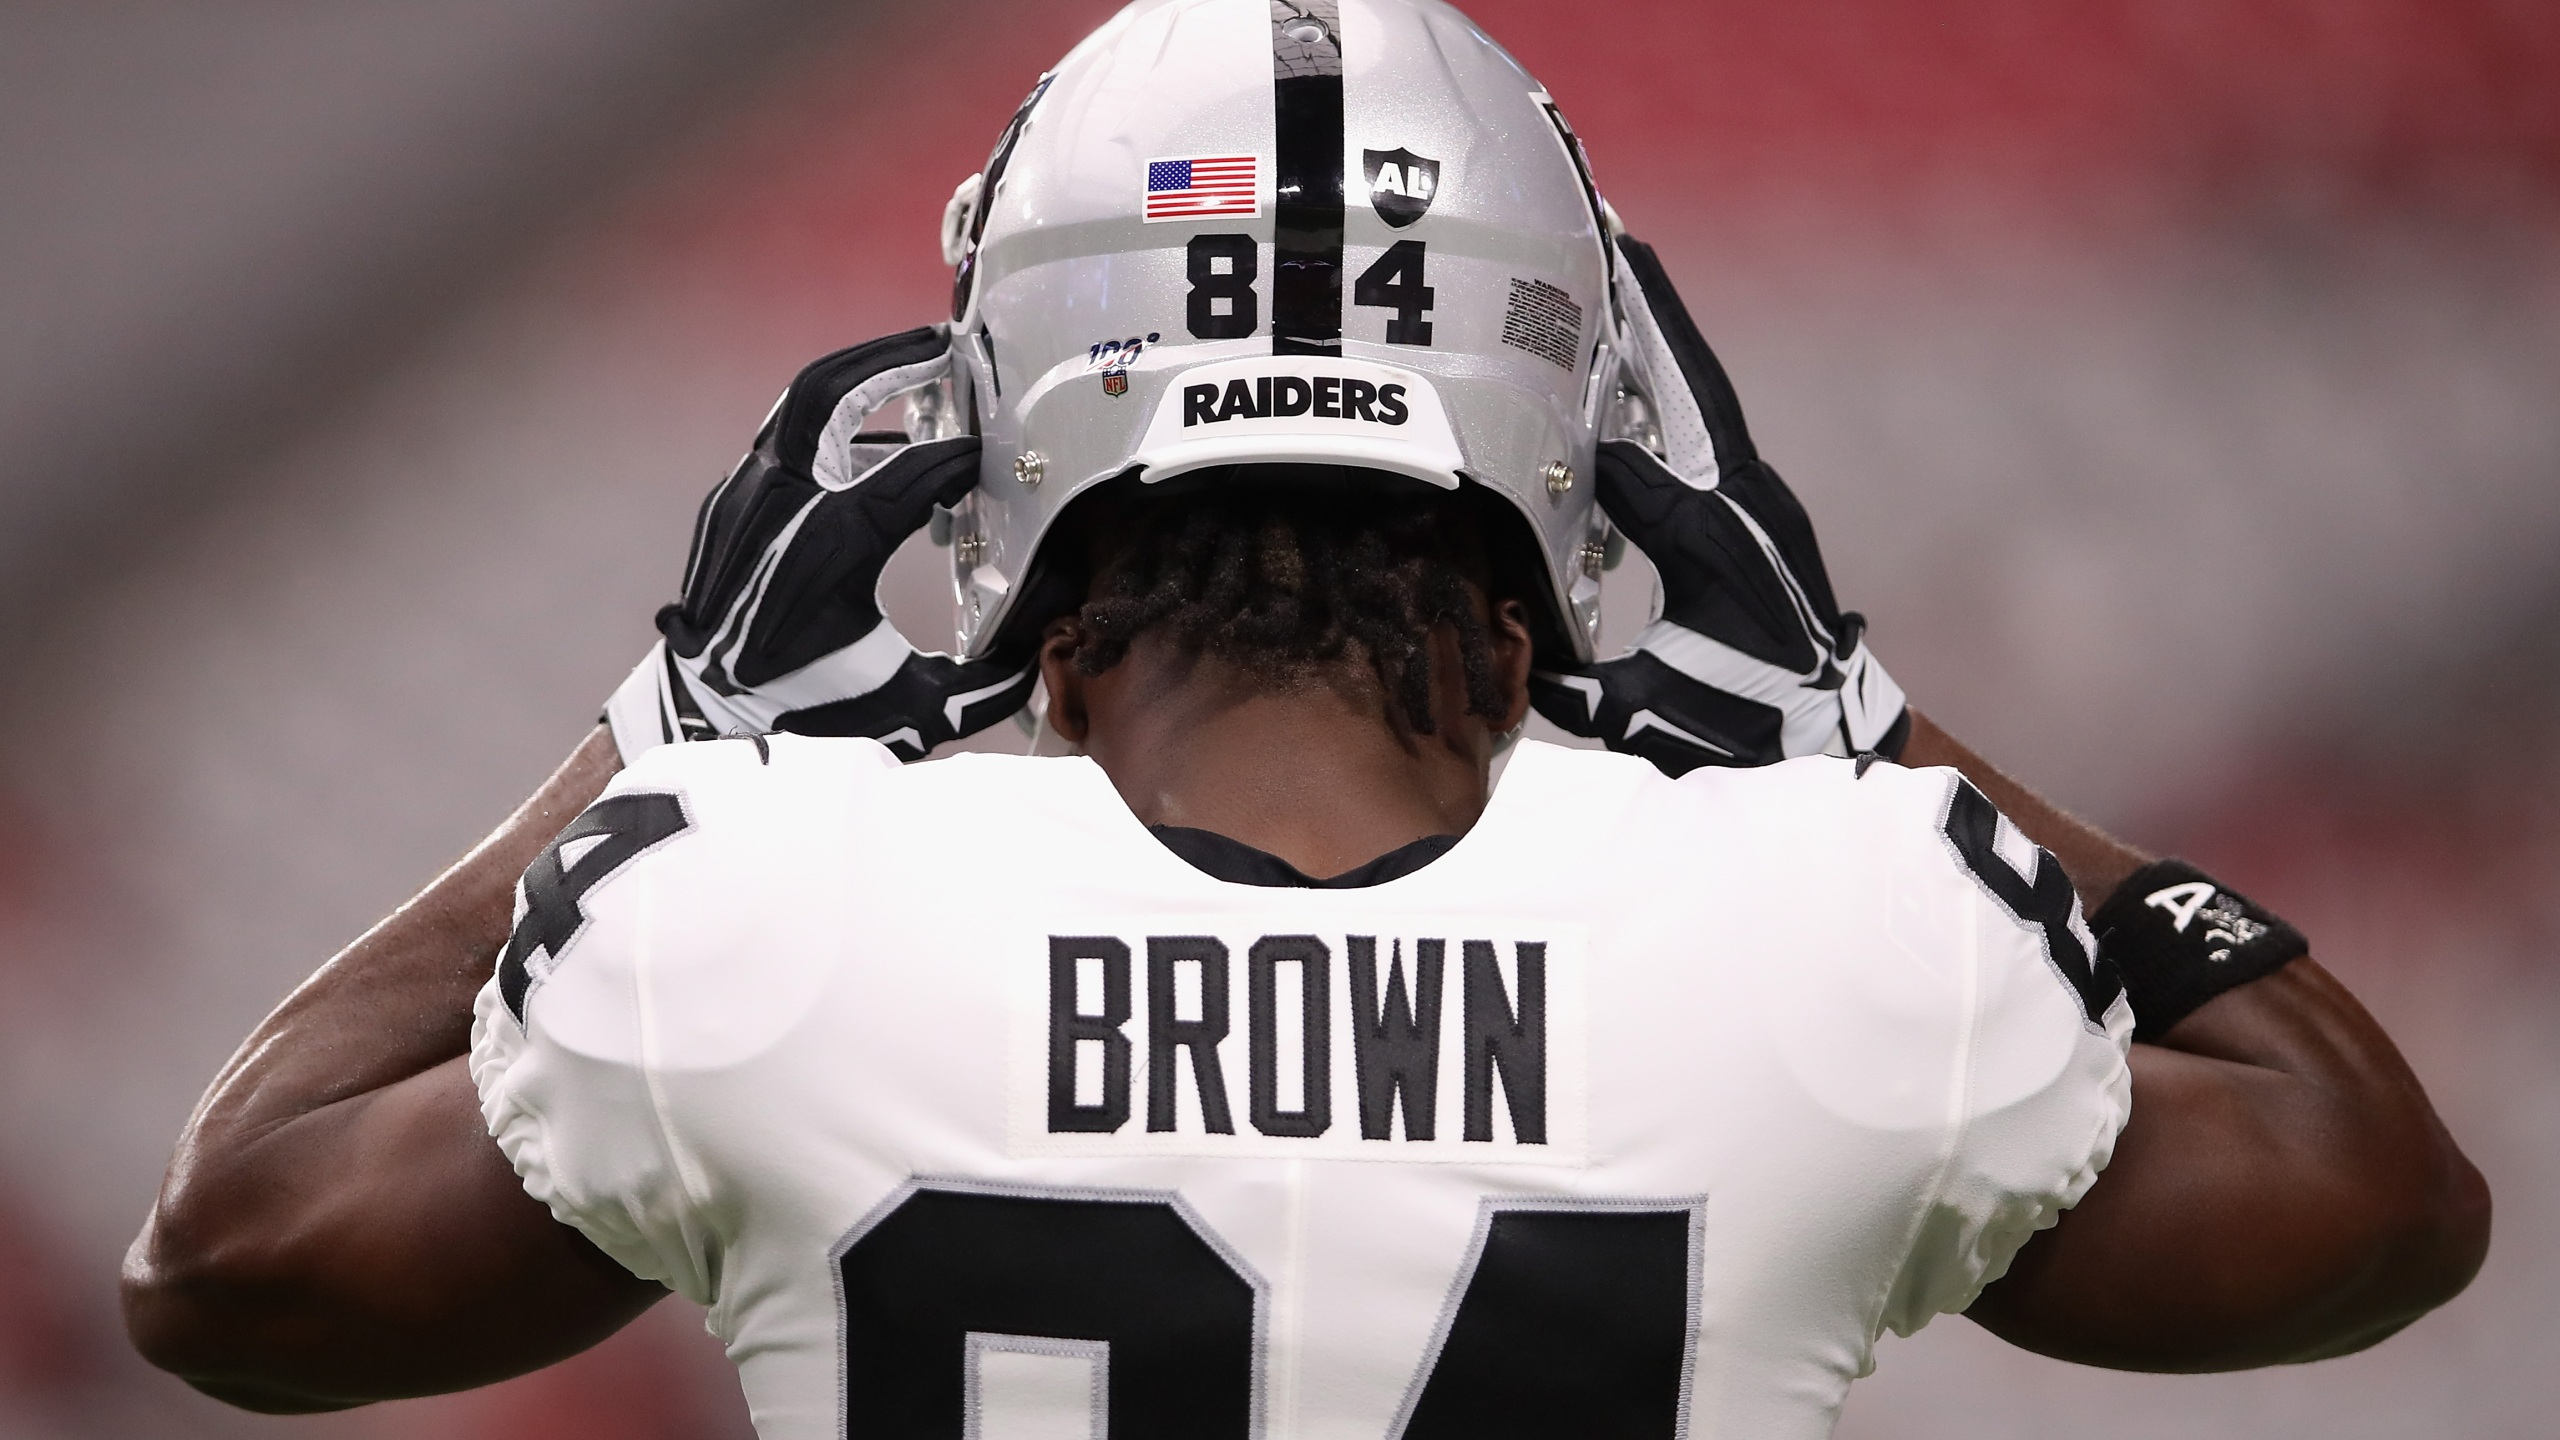 new arrival 63f37 92679 Cut by Raiders, Antonio Brown is a Patriot on eve of opener ...